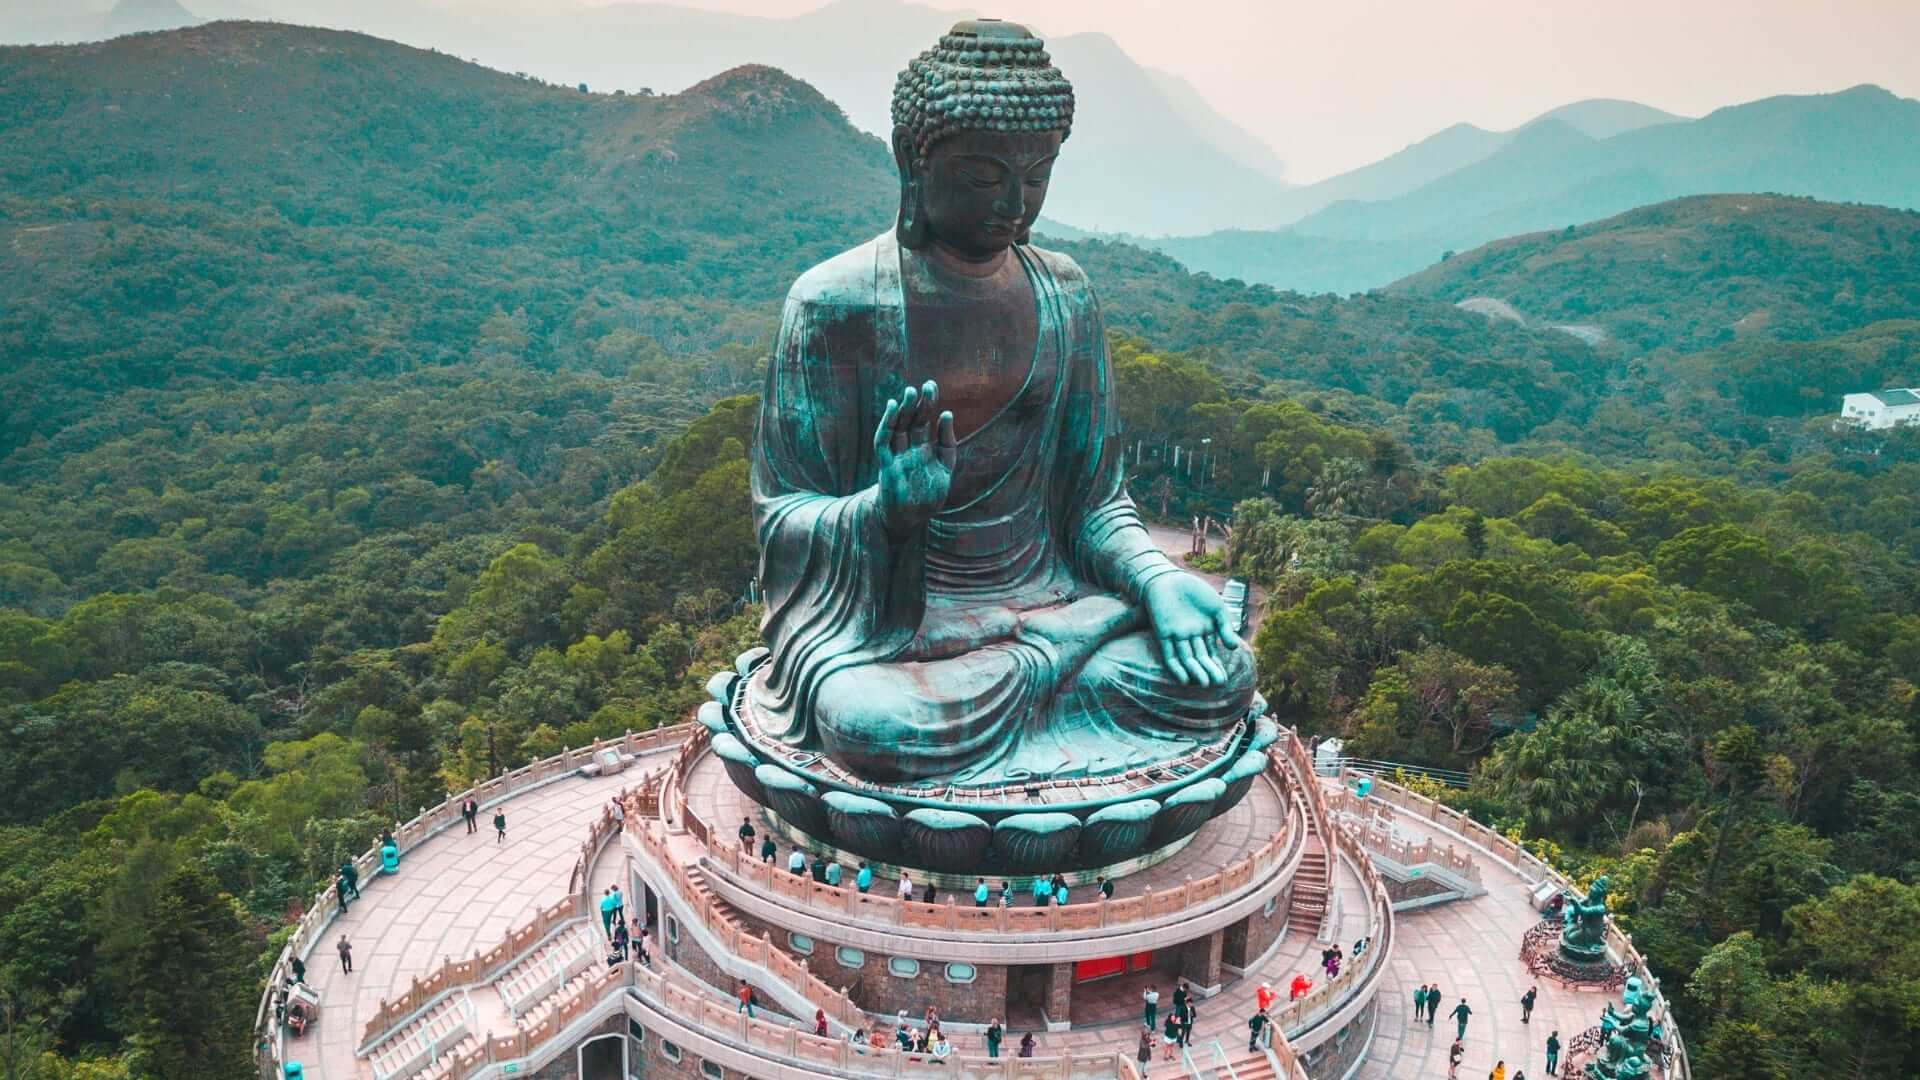 People are walking around a big buddha statue in the middle of a jungle in Hong Kong.